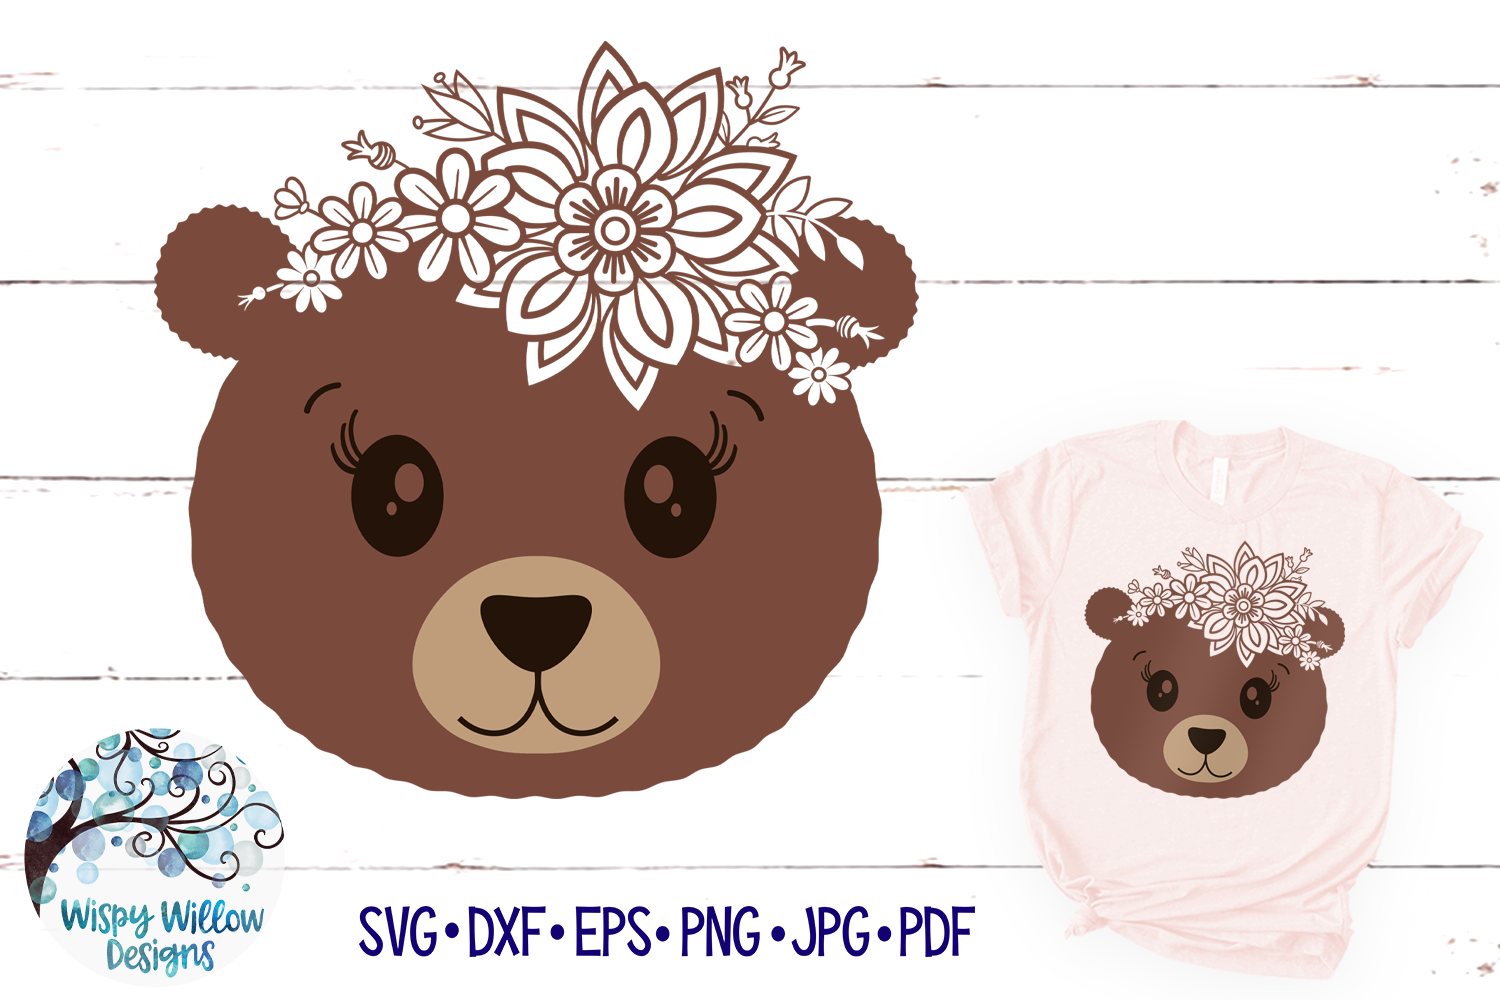 Floral Bear SVG | Cute Bear Face SVG Cut File example image 1